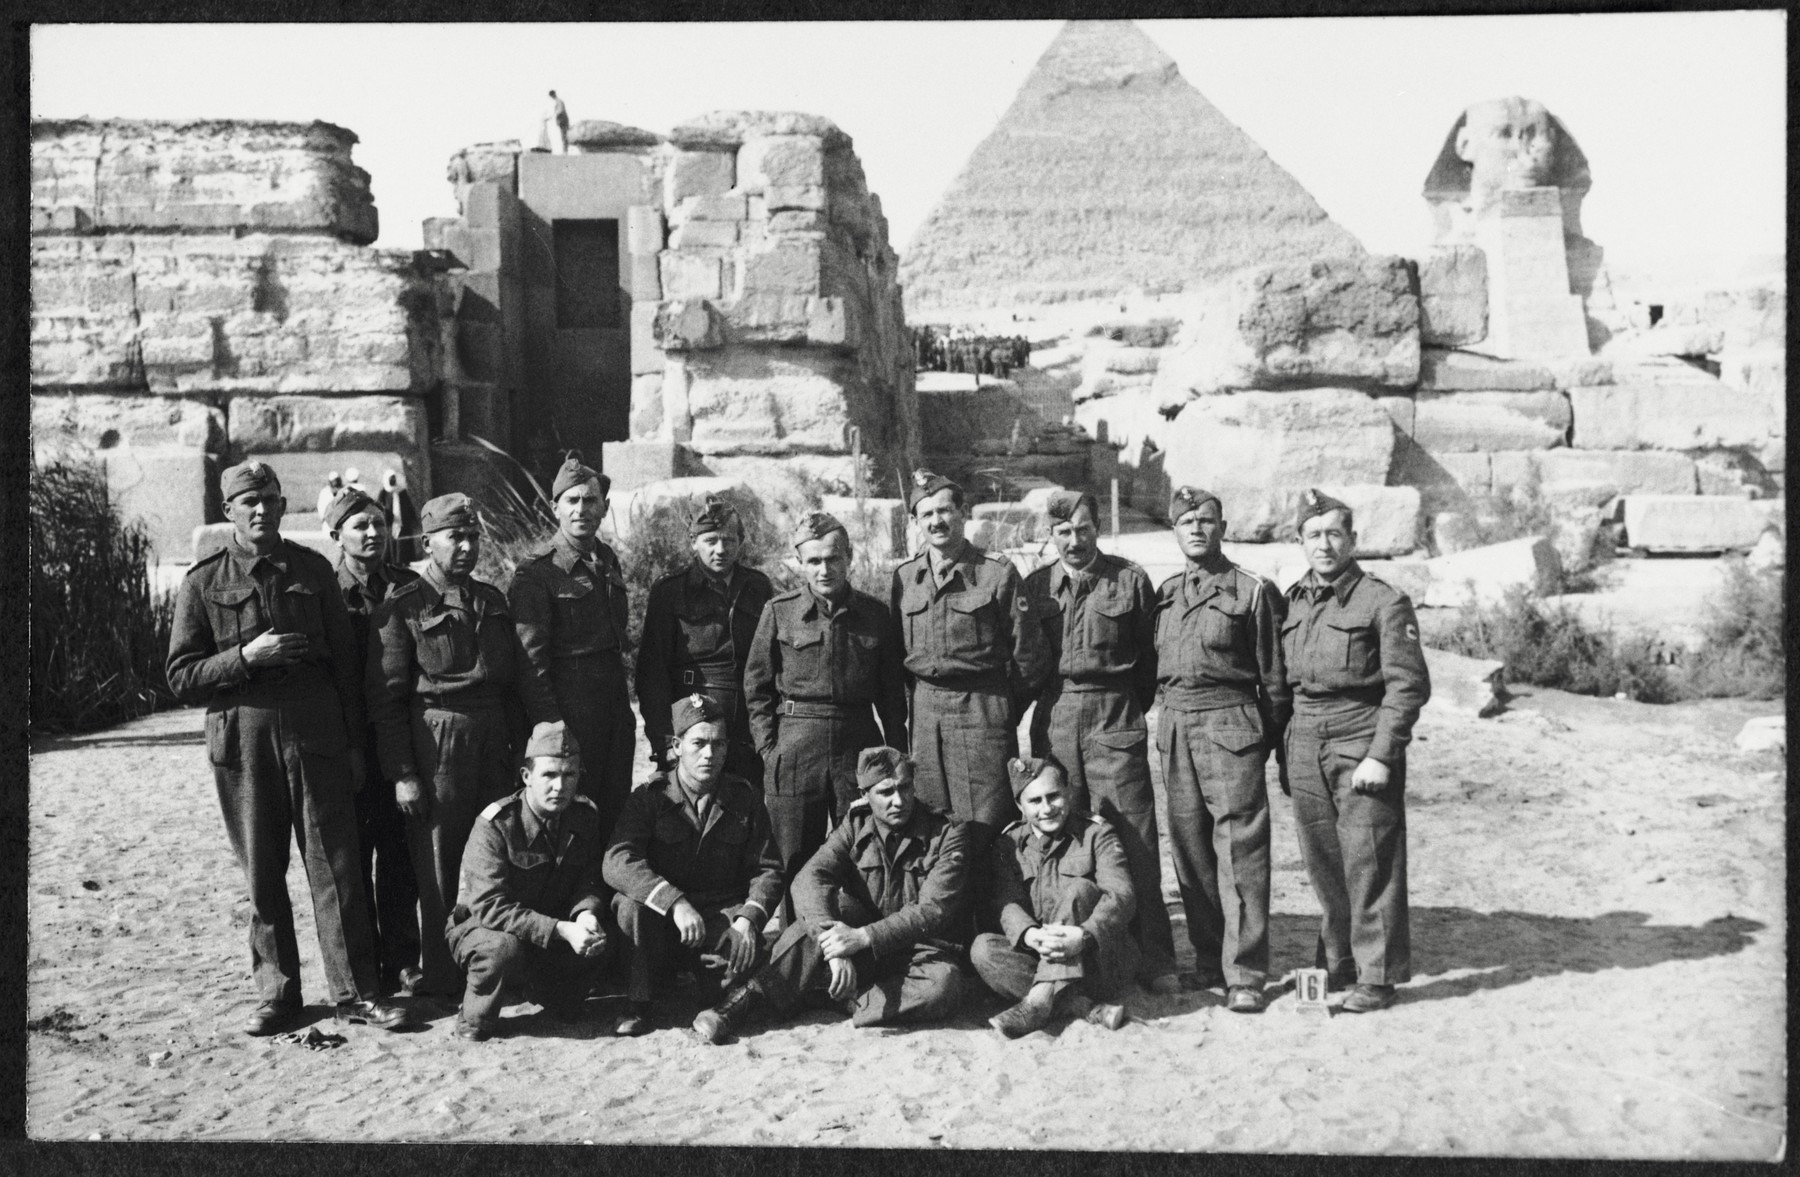 Group portrait of members of the 2nd Polish Corps (Anders Army) during an excursion to the Sphinx in the Giza plateau near Cairo, Egypt, where they were stationed in the winter of 1944.  Among those pictured are Markus Rosenzweig (standing fourth from the left), Jan Wysoki (sitting on the far right), and his friend  Bolek Stankiewicz (standing second from right).